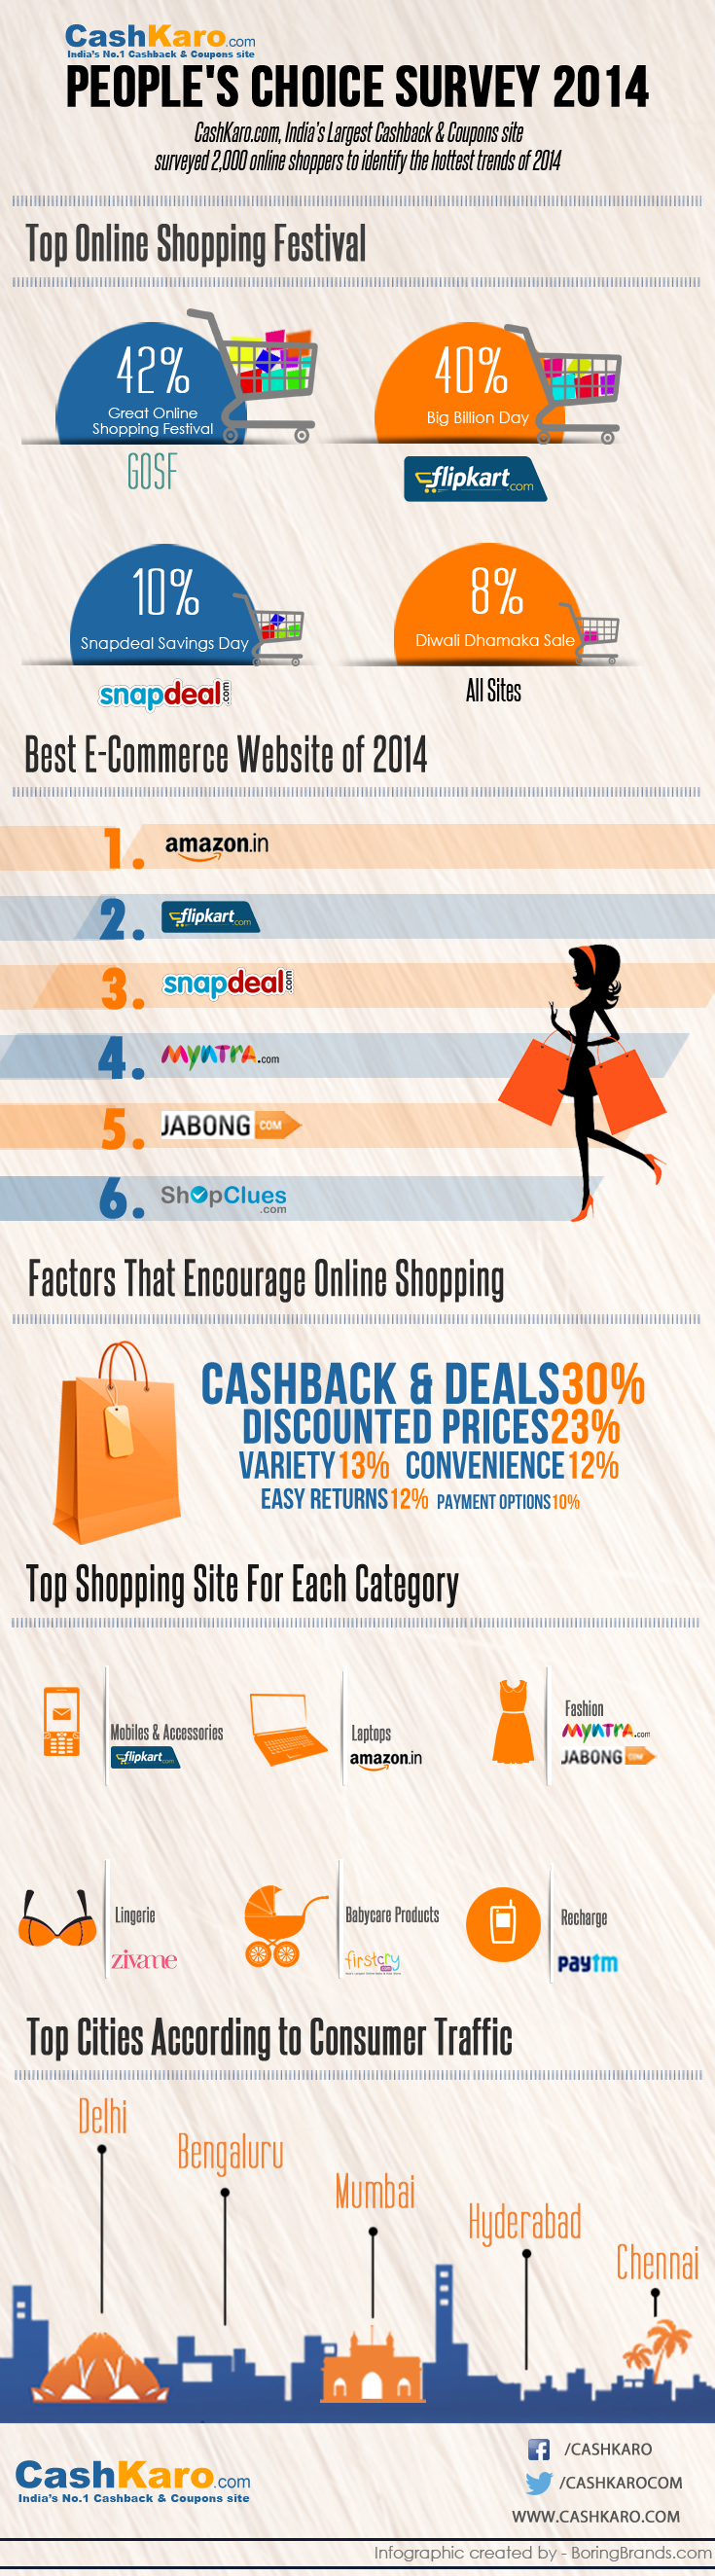 CashKaro.com- People's Choice Survey 2014- Infographic